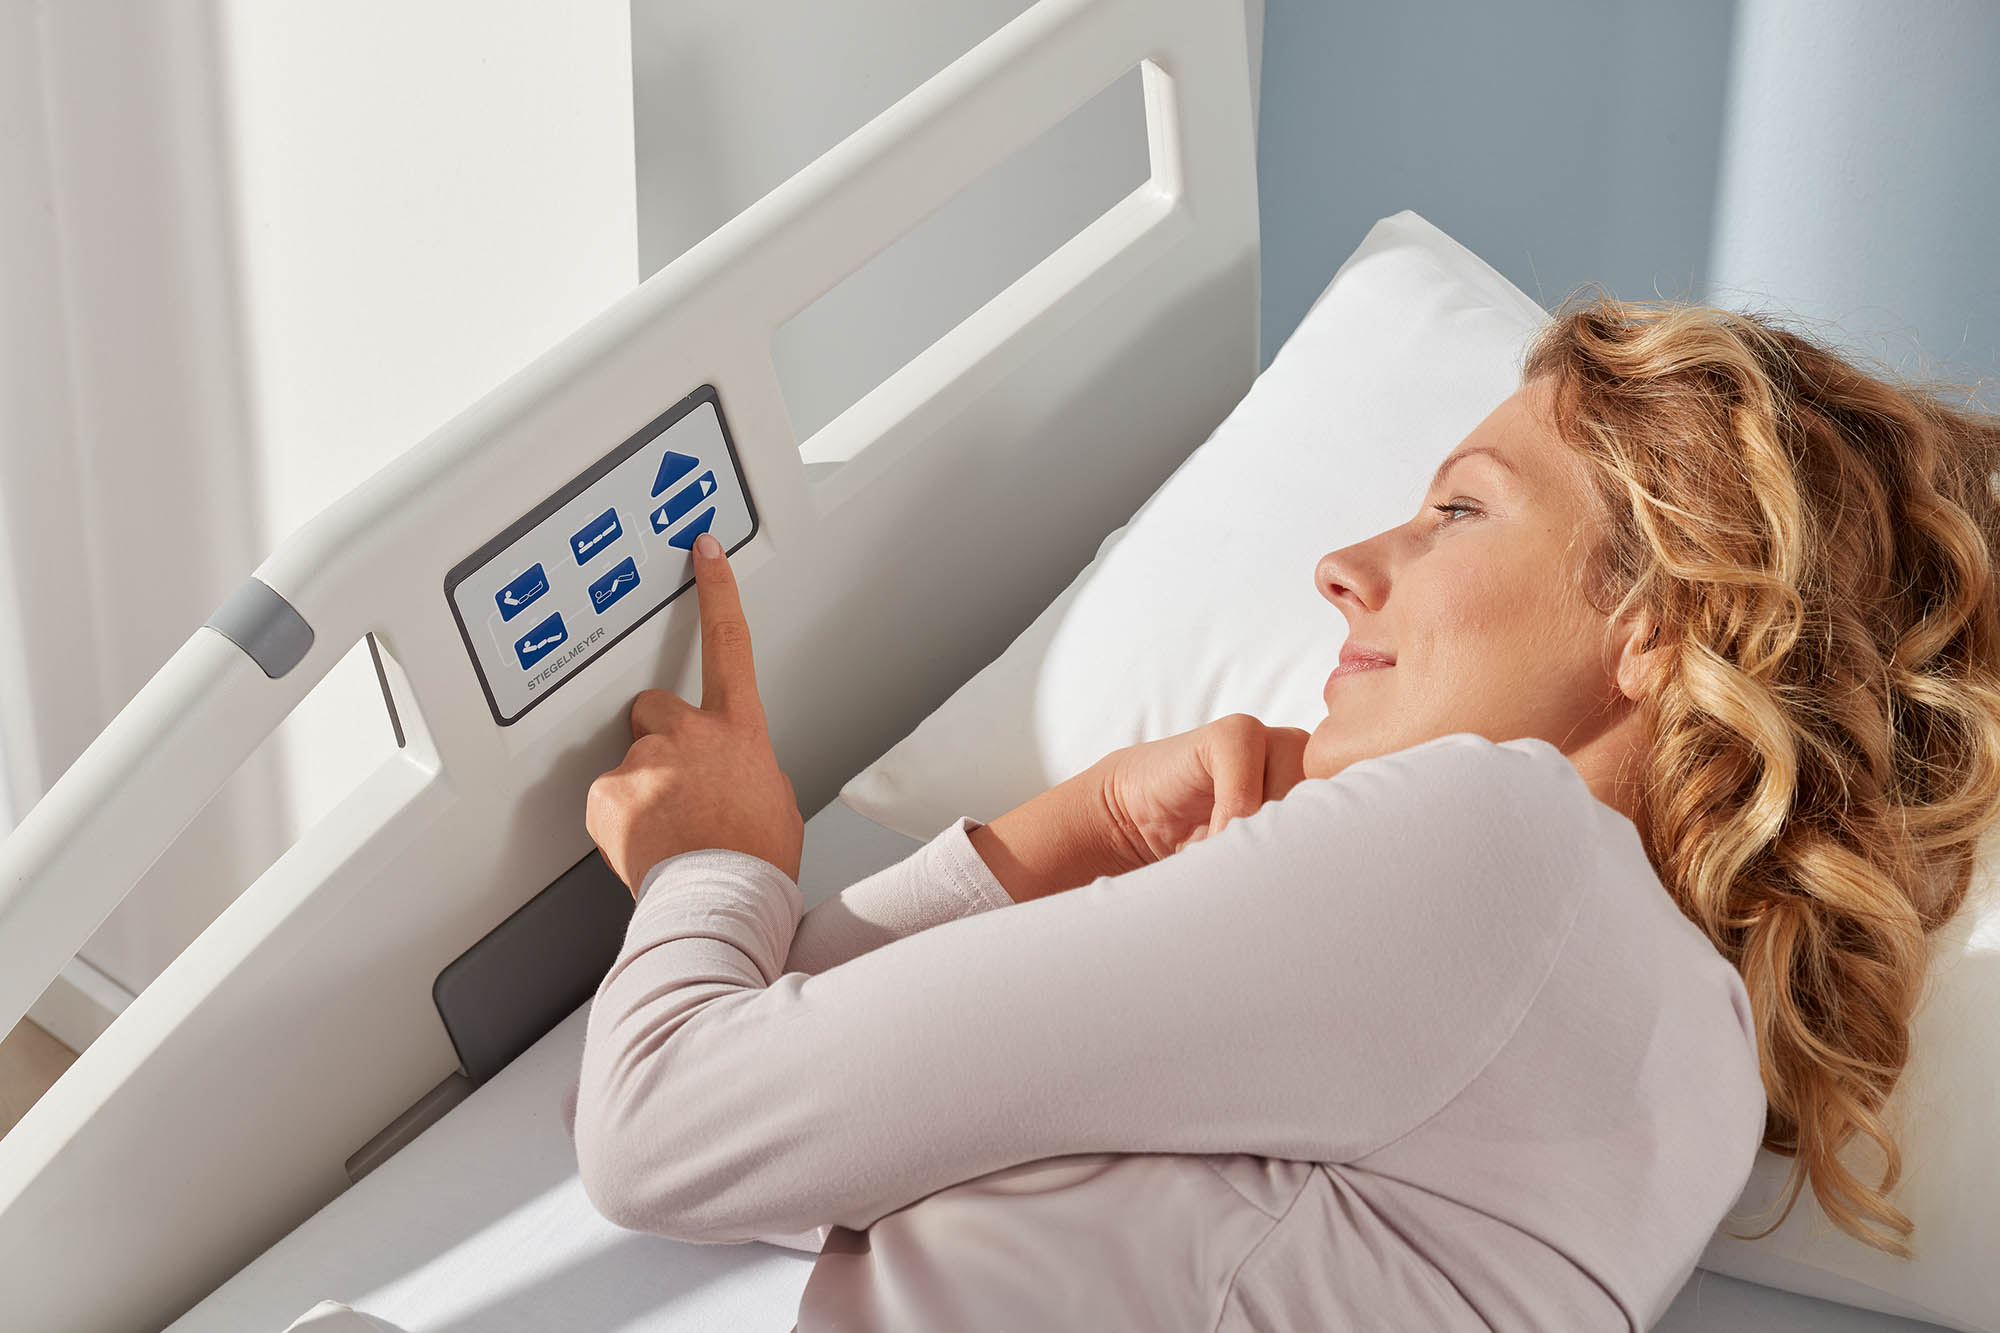 Patient level on the control panel of the Evario hospital bed